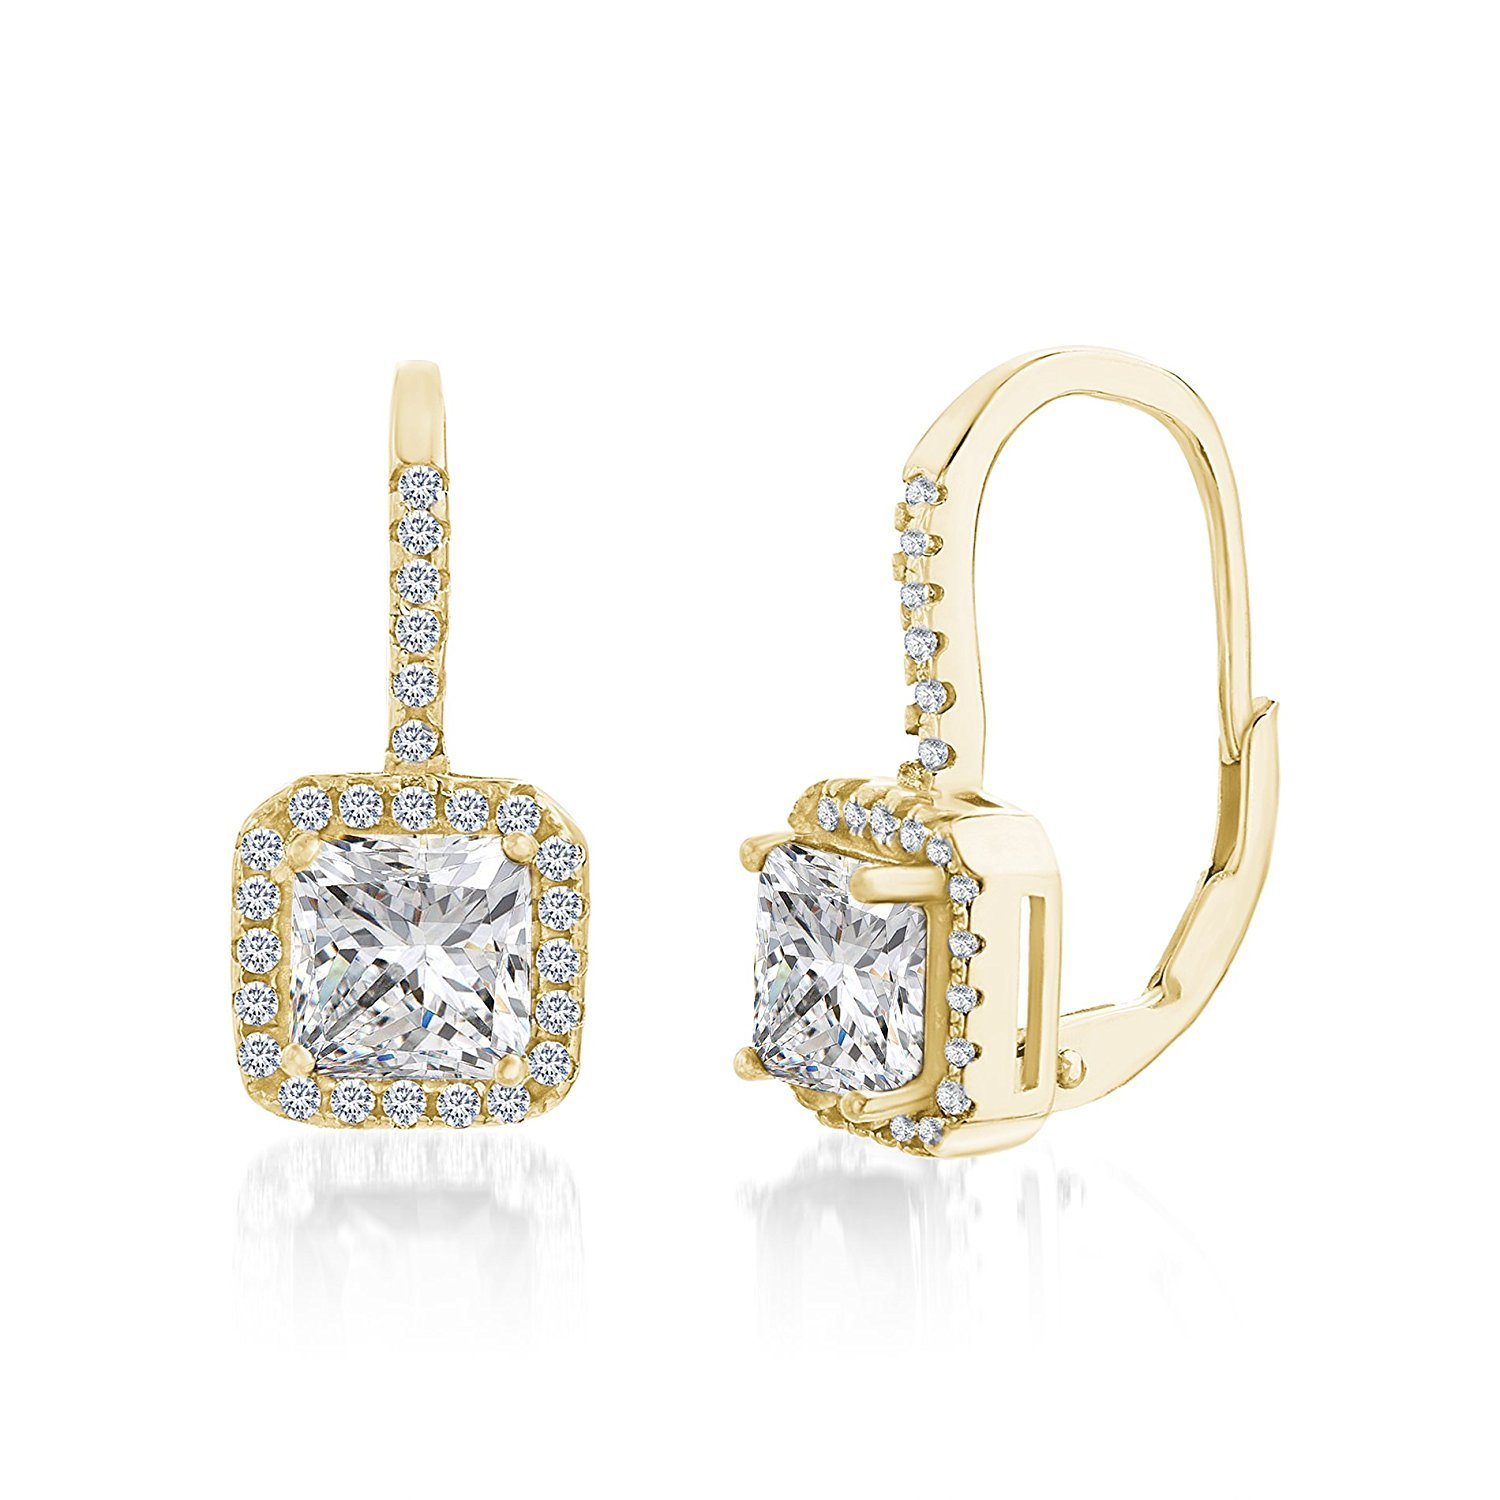 Lesa Michele Womens Princess Cut Cubic Zirconia Halo Style Lever Back Earrings in Yellow Gold over Sterling Silver